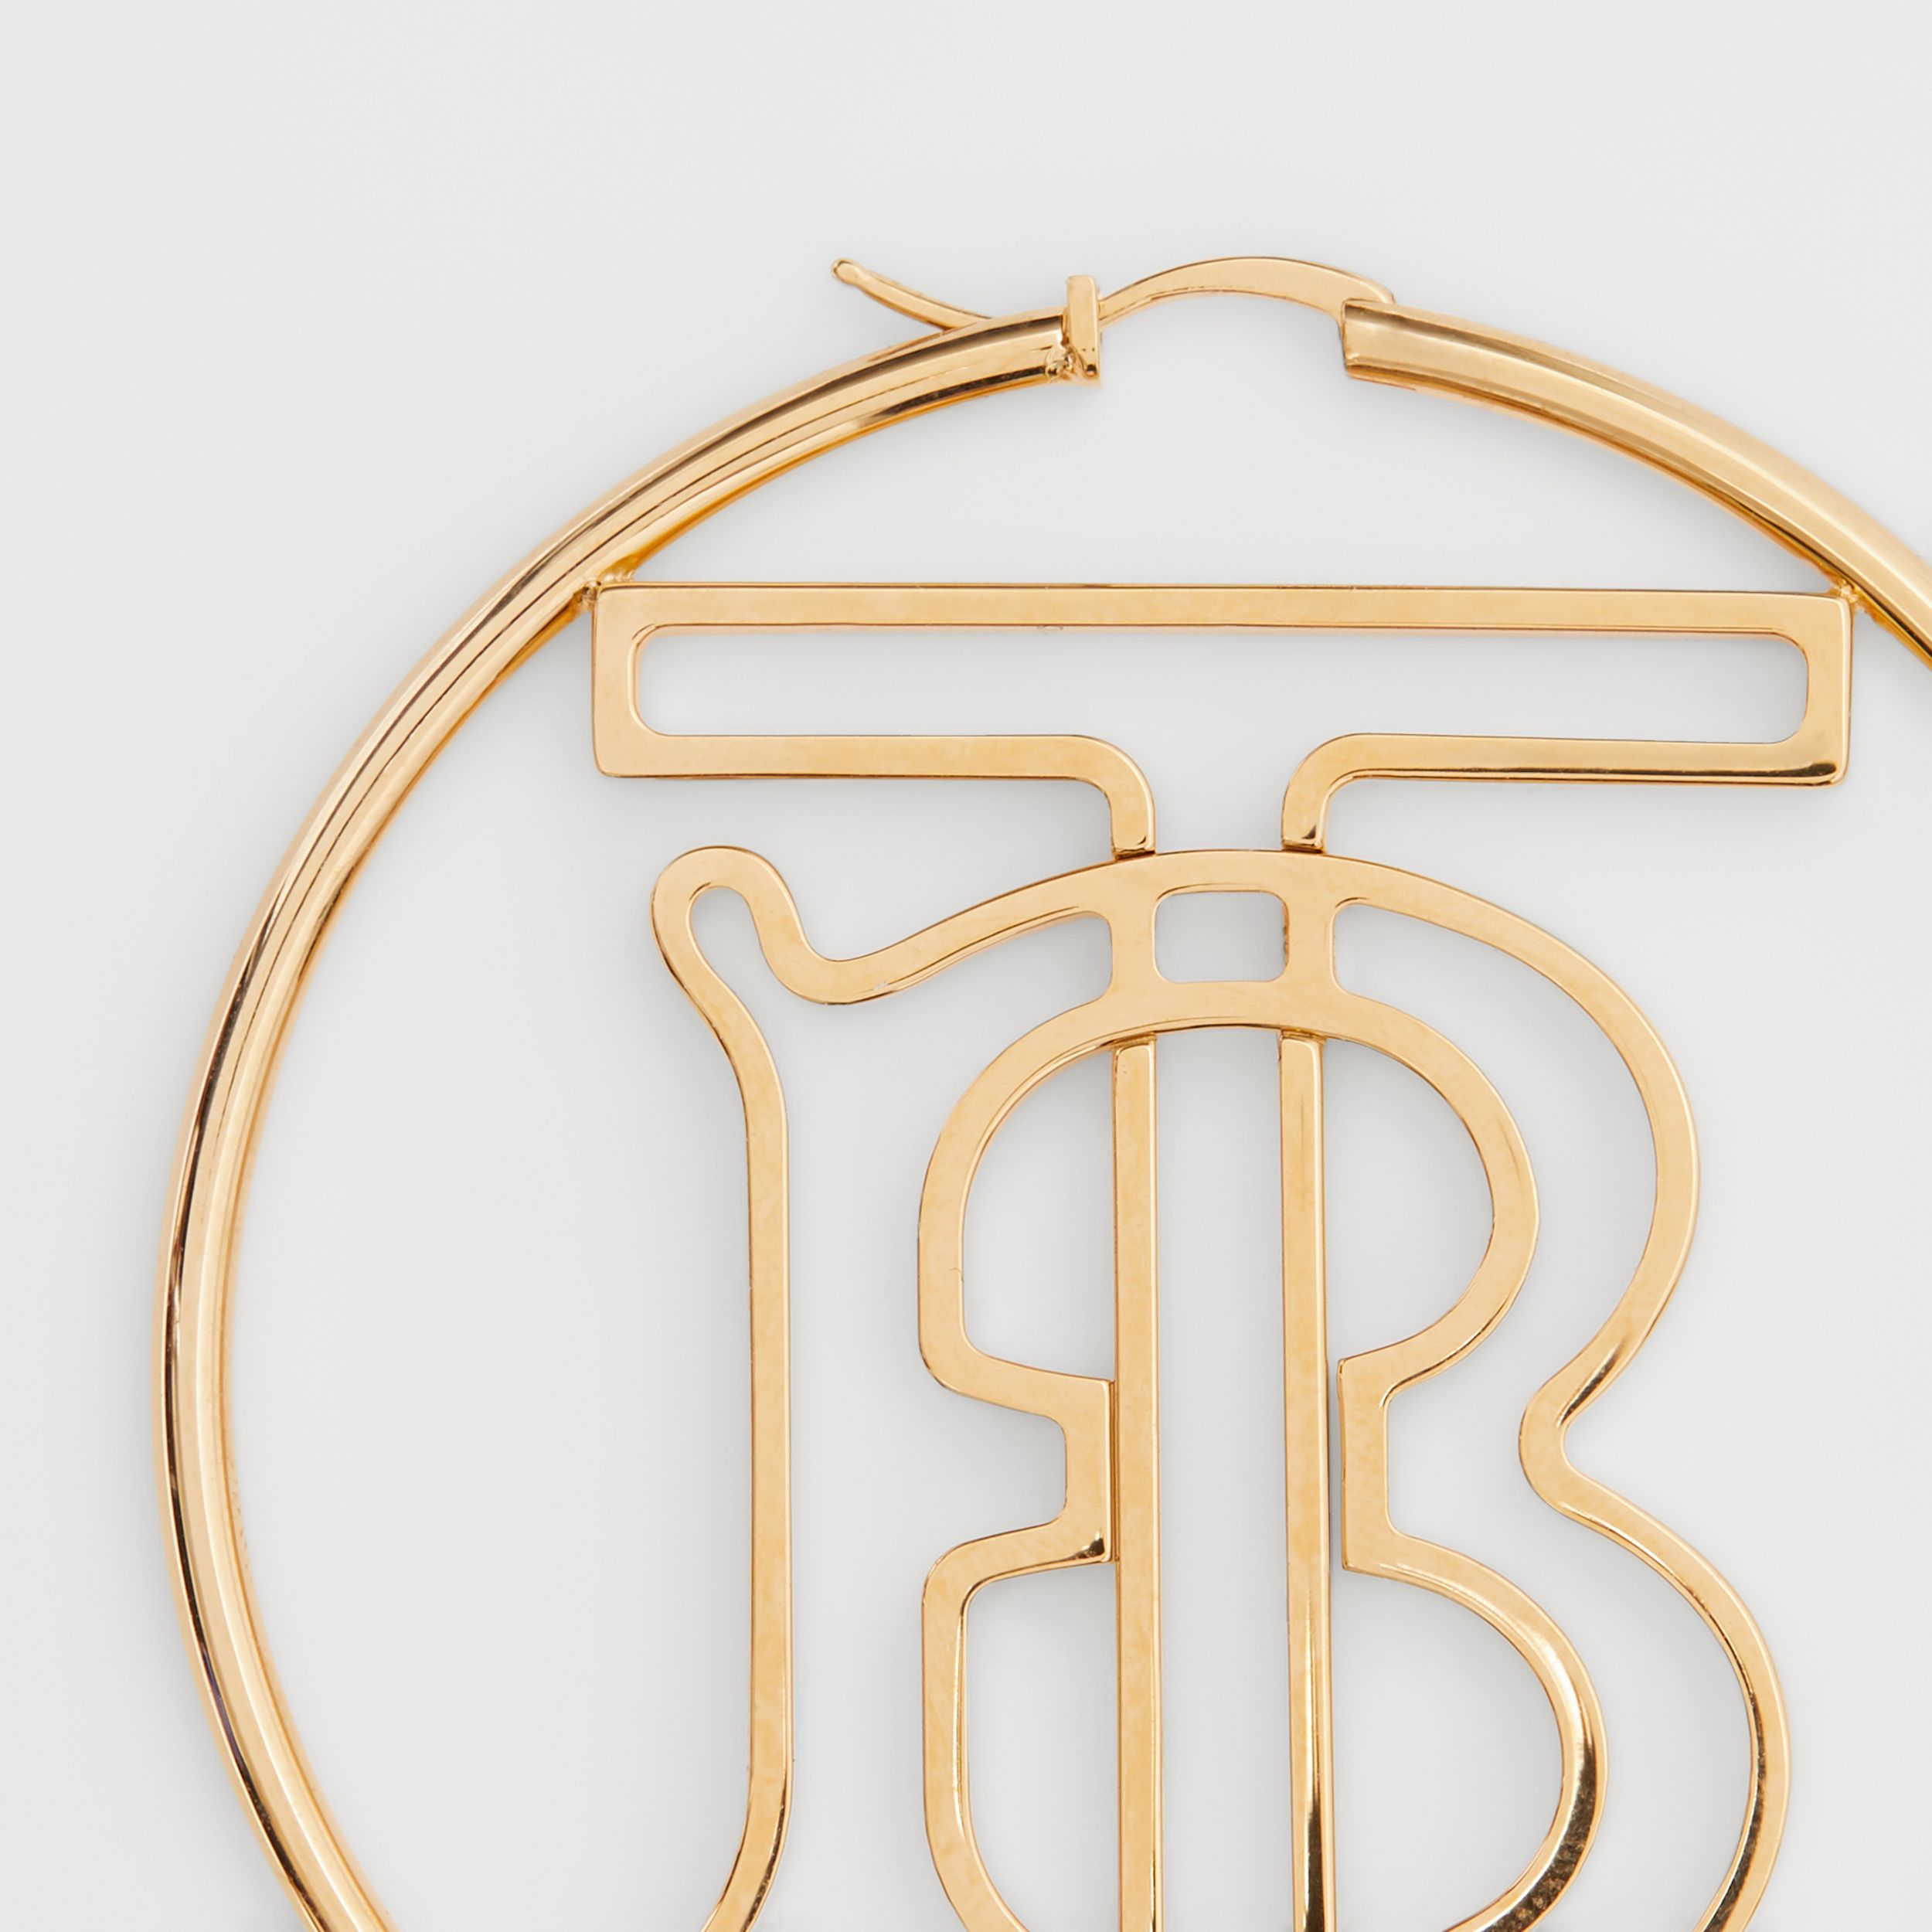 Gold-plated Monogram Motif Hoop Earrings in Light - Women | Burberry Hong Kong S.A.R. - 2